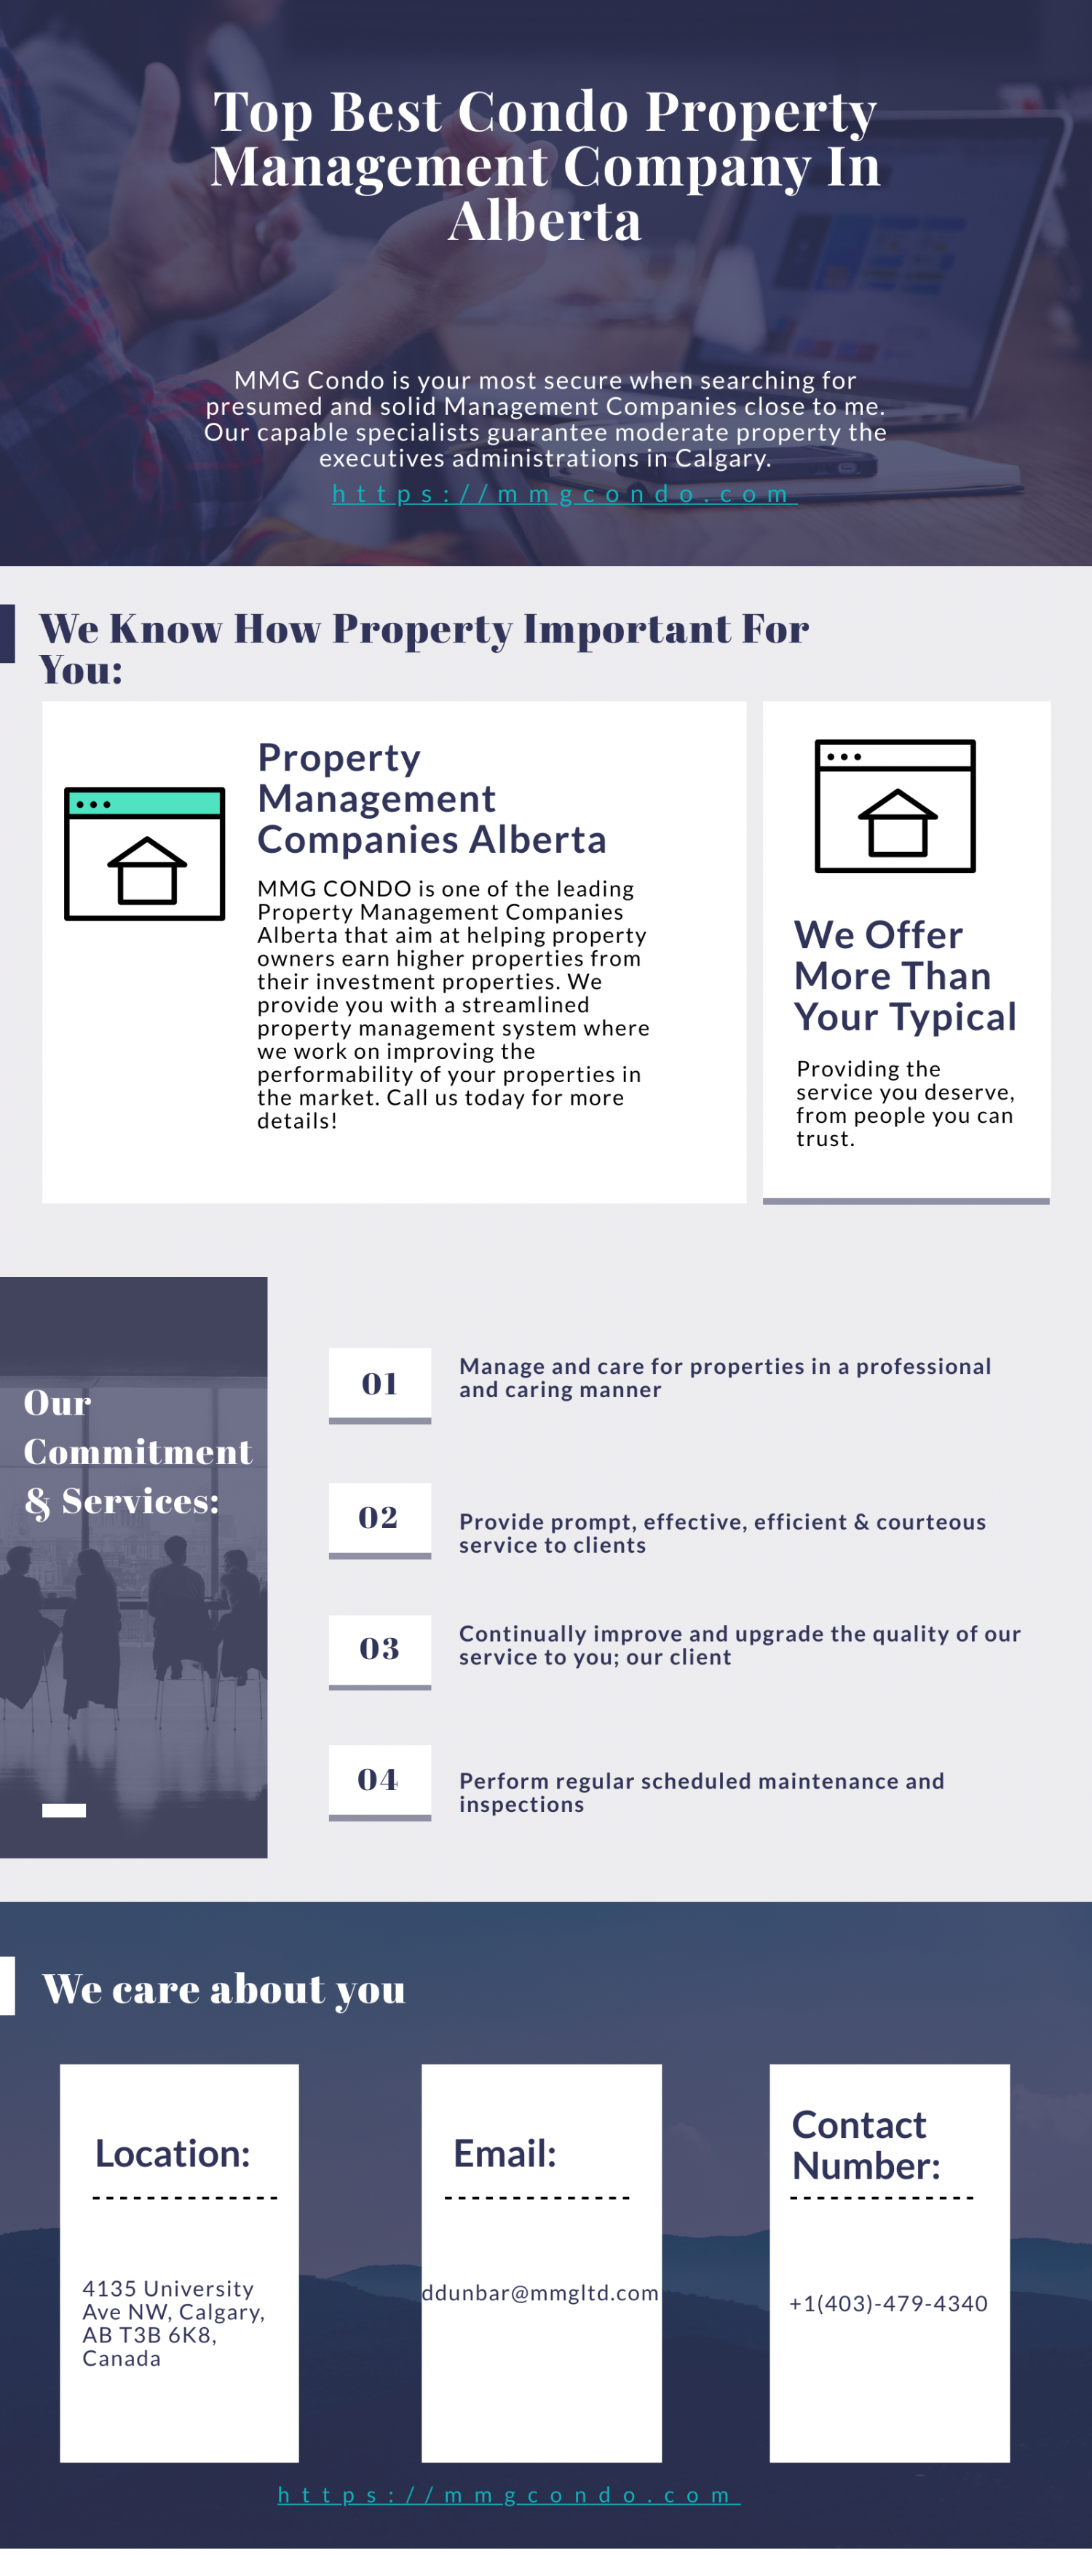 Top Best Condo Property Management Company In Alberta | MMG Infographic